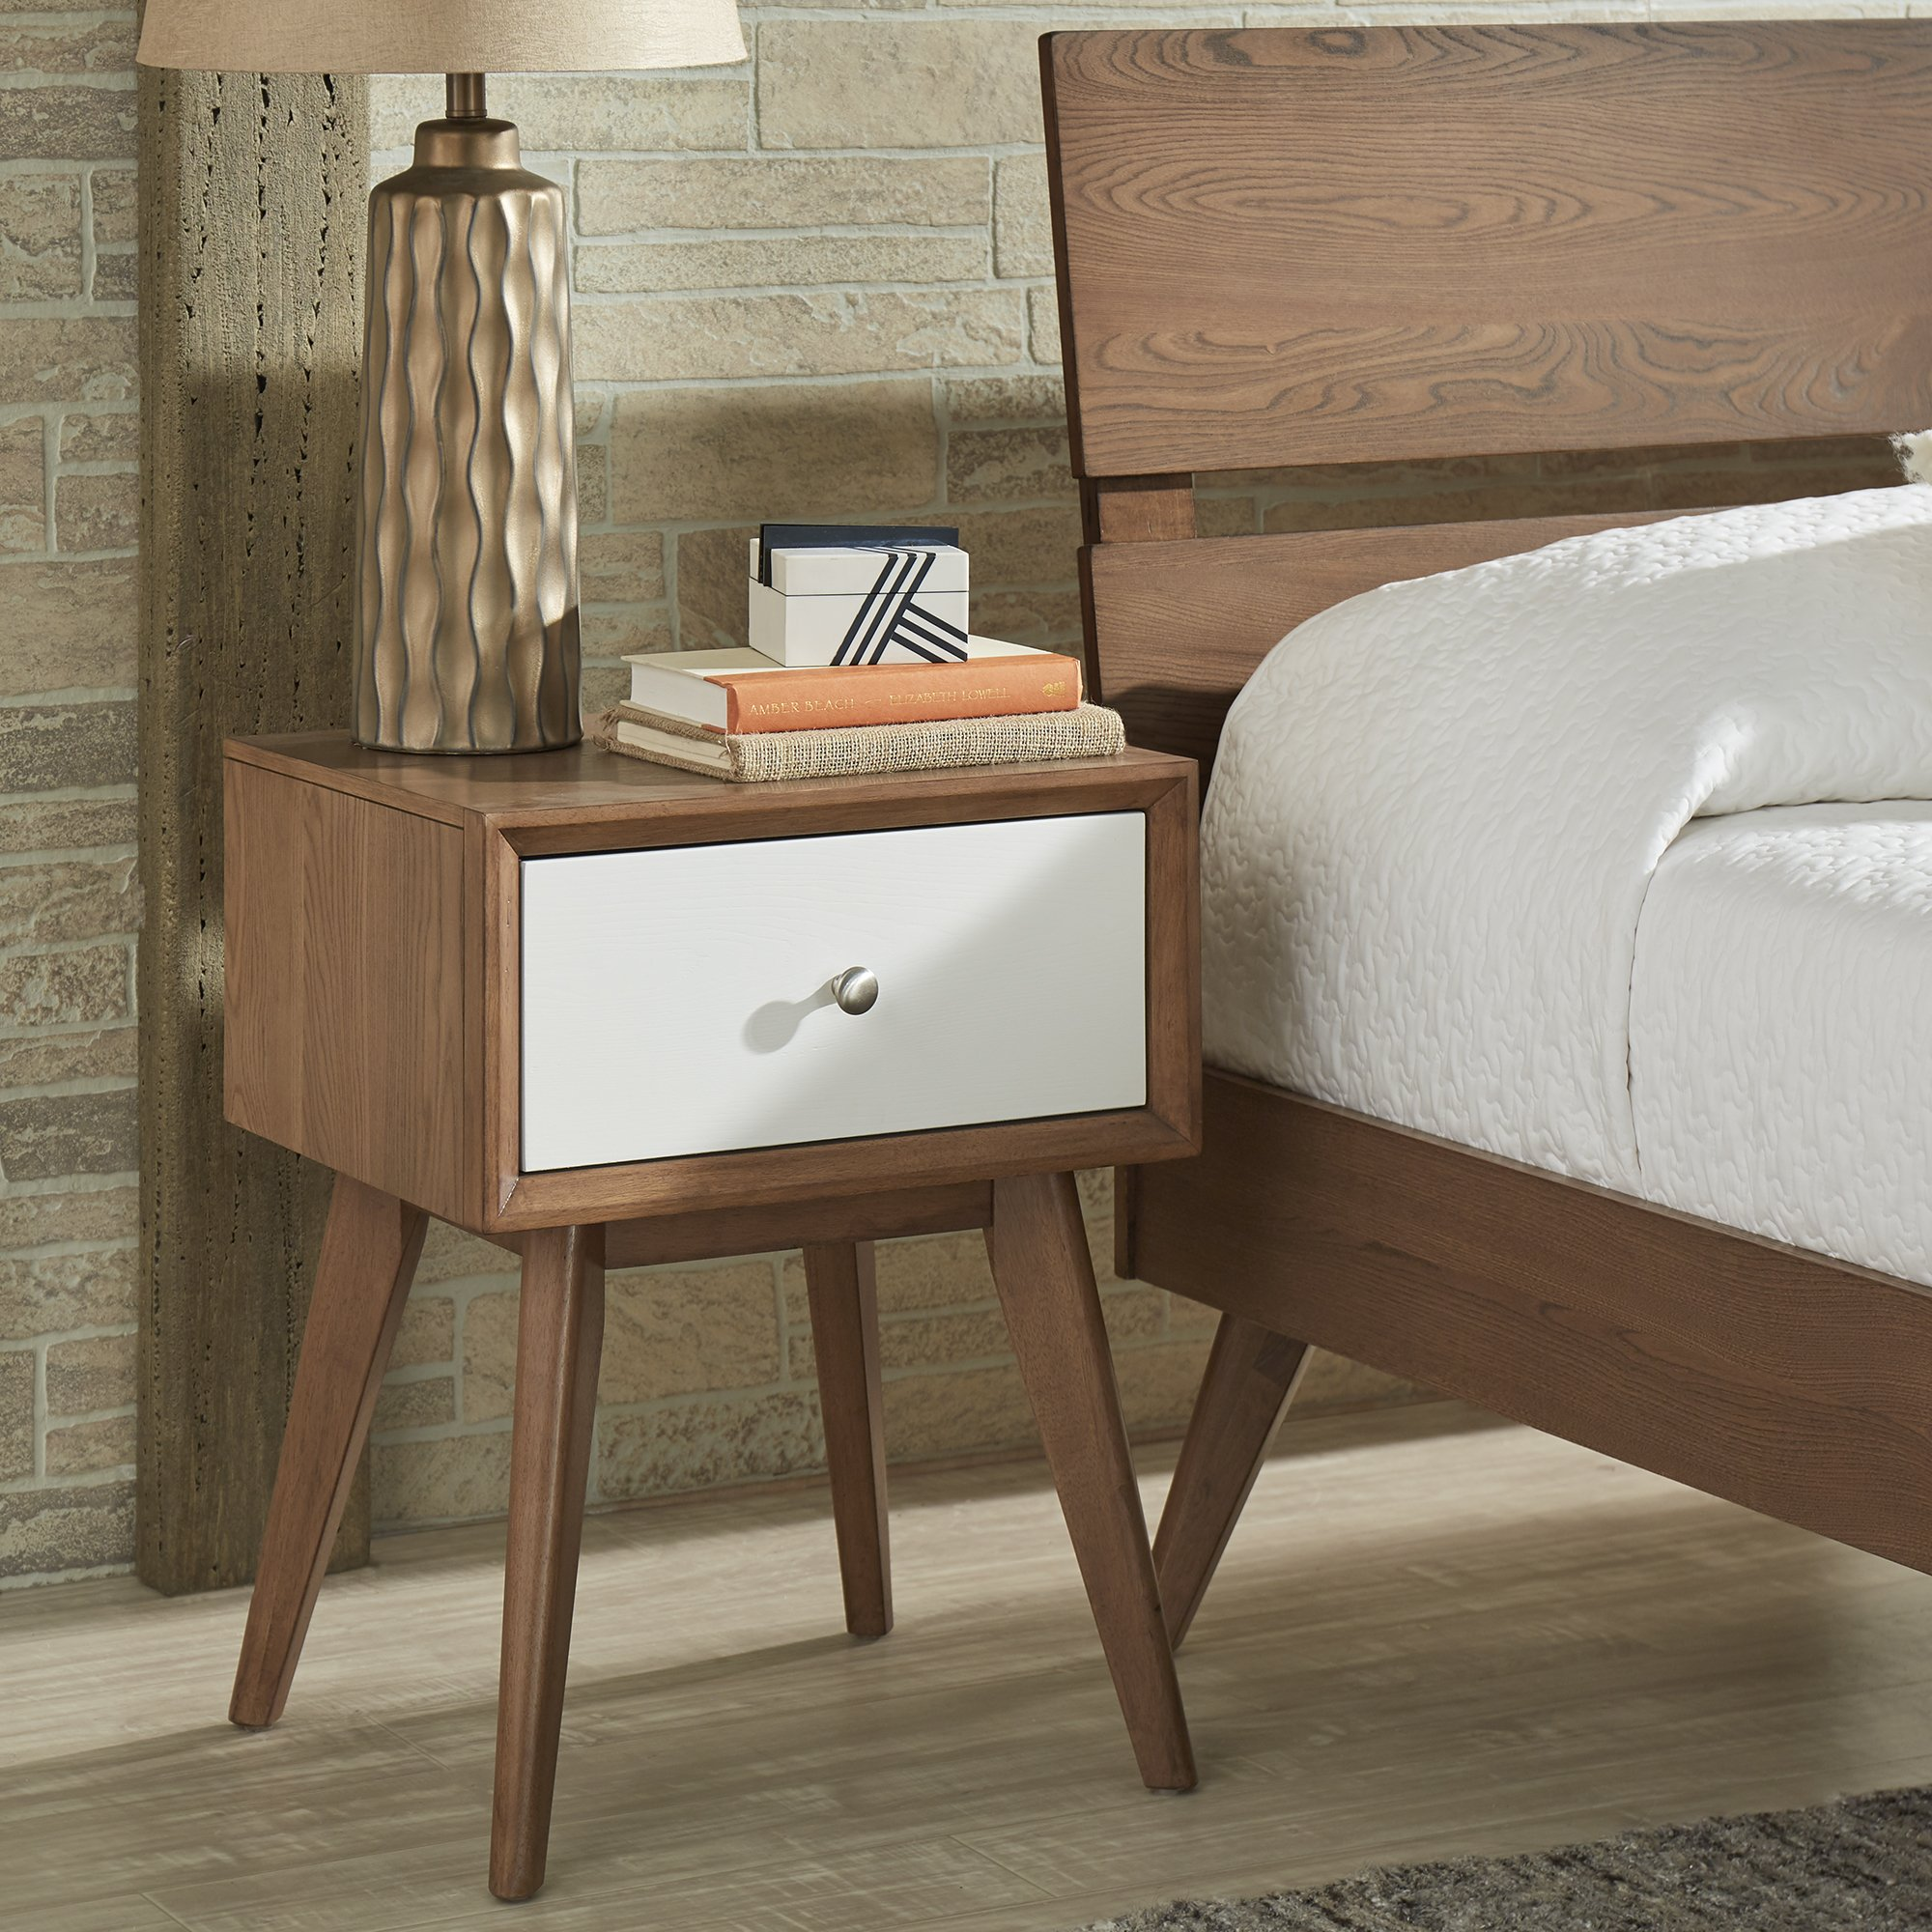 sylvia mid century white and walnut drawer nightstand inspire modern metal accent table free shipping today round glass dining outside end bedside chest drawers nautical bedroom